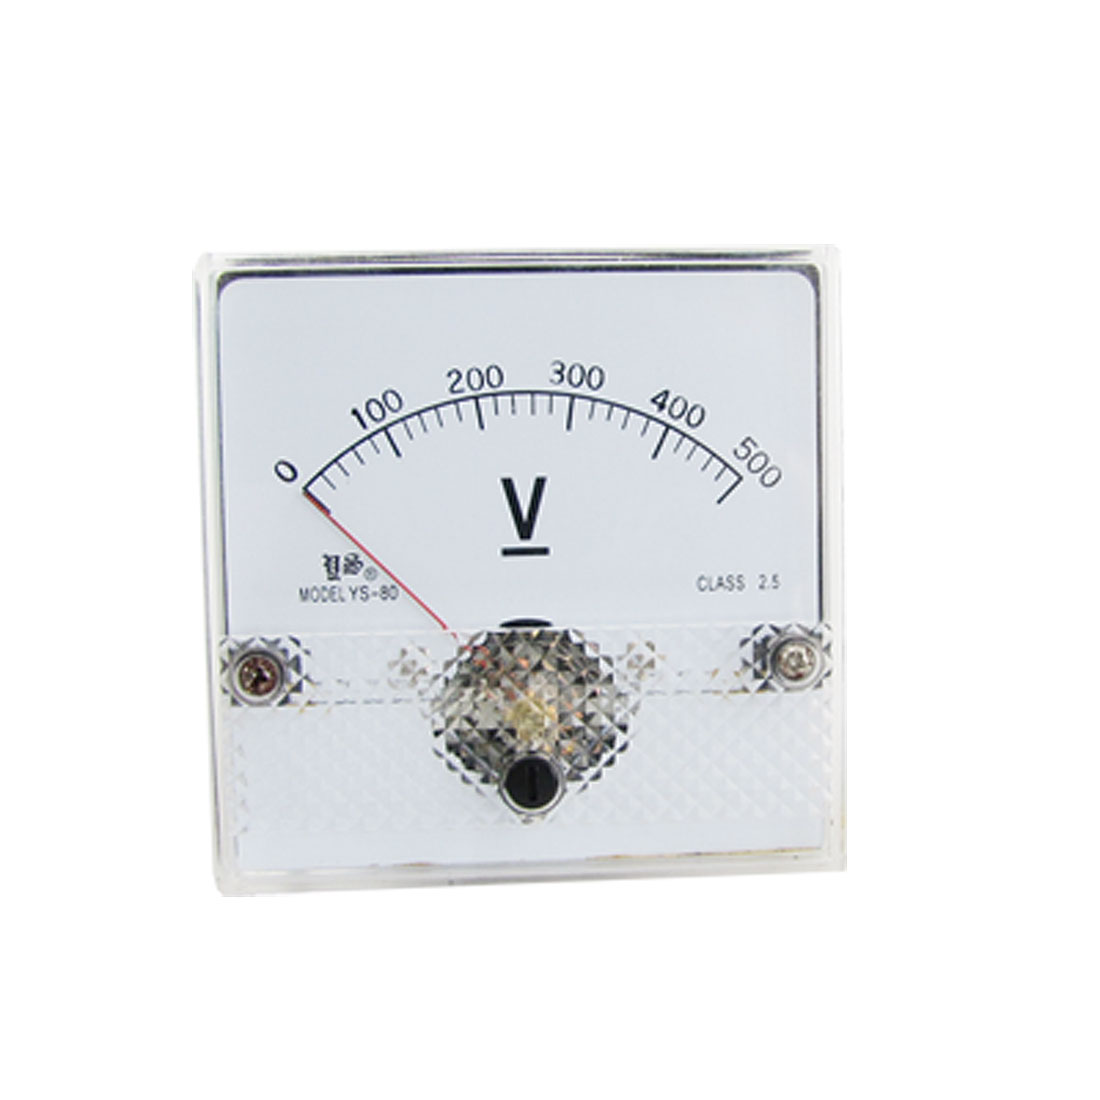 Fine Tuning Dial Analog Voltage Panel Meter Voltmeter DC 0-500V